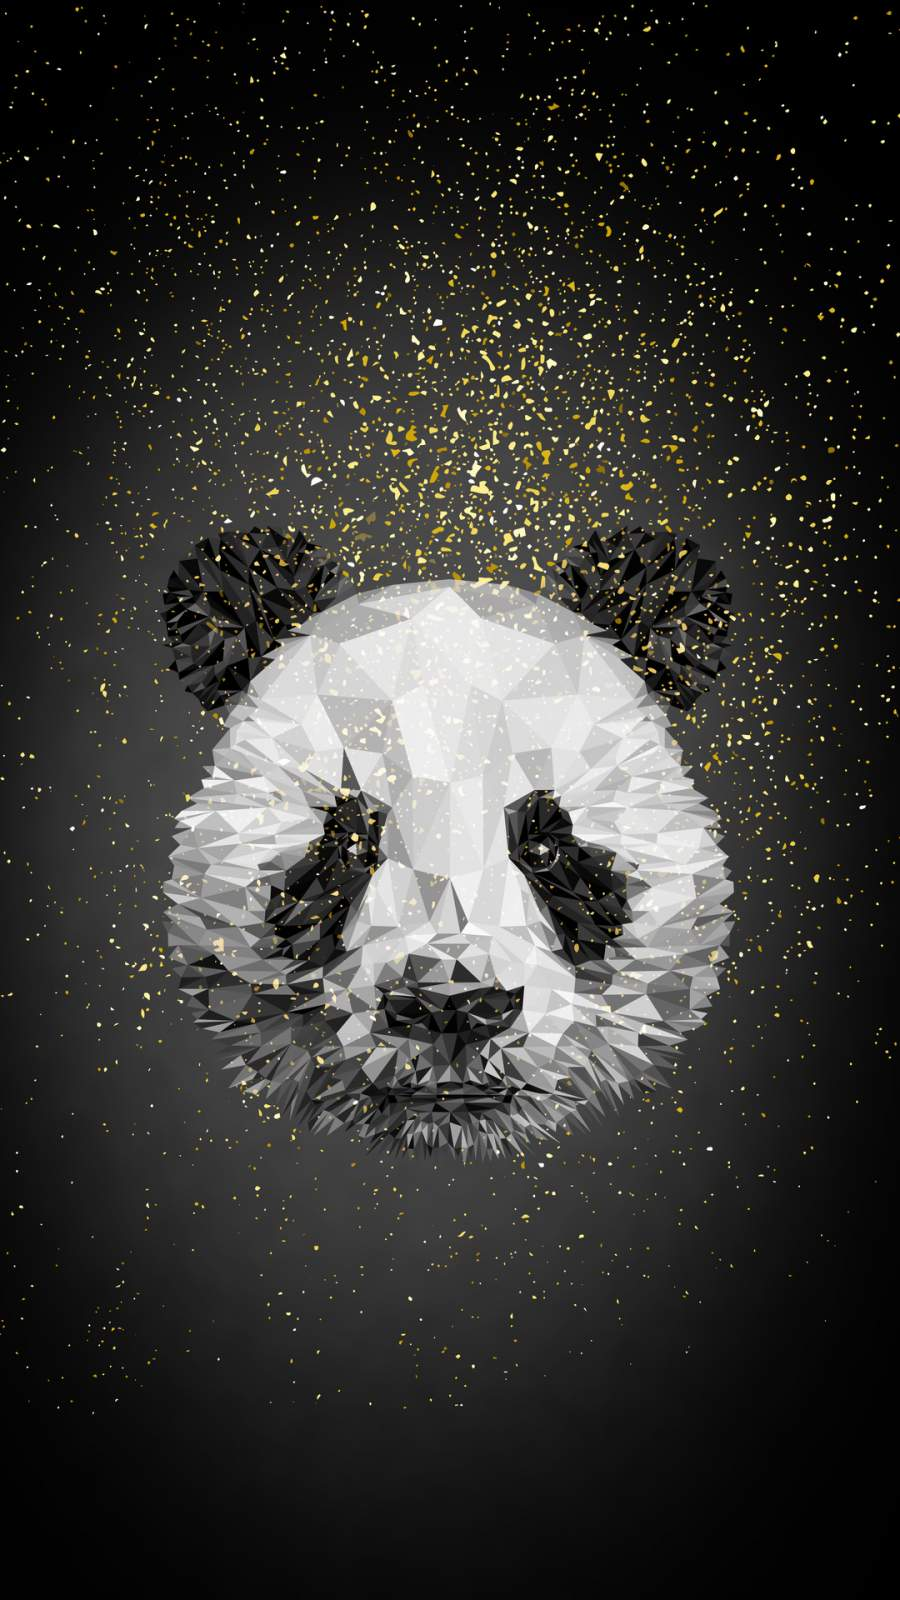 Panda Low Poly iPhone Wallpaper